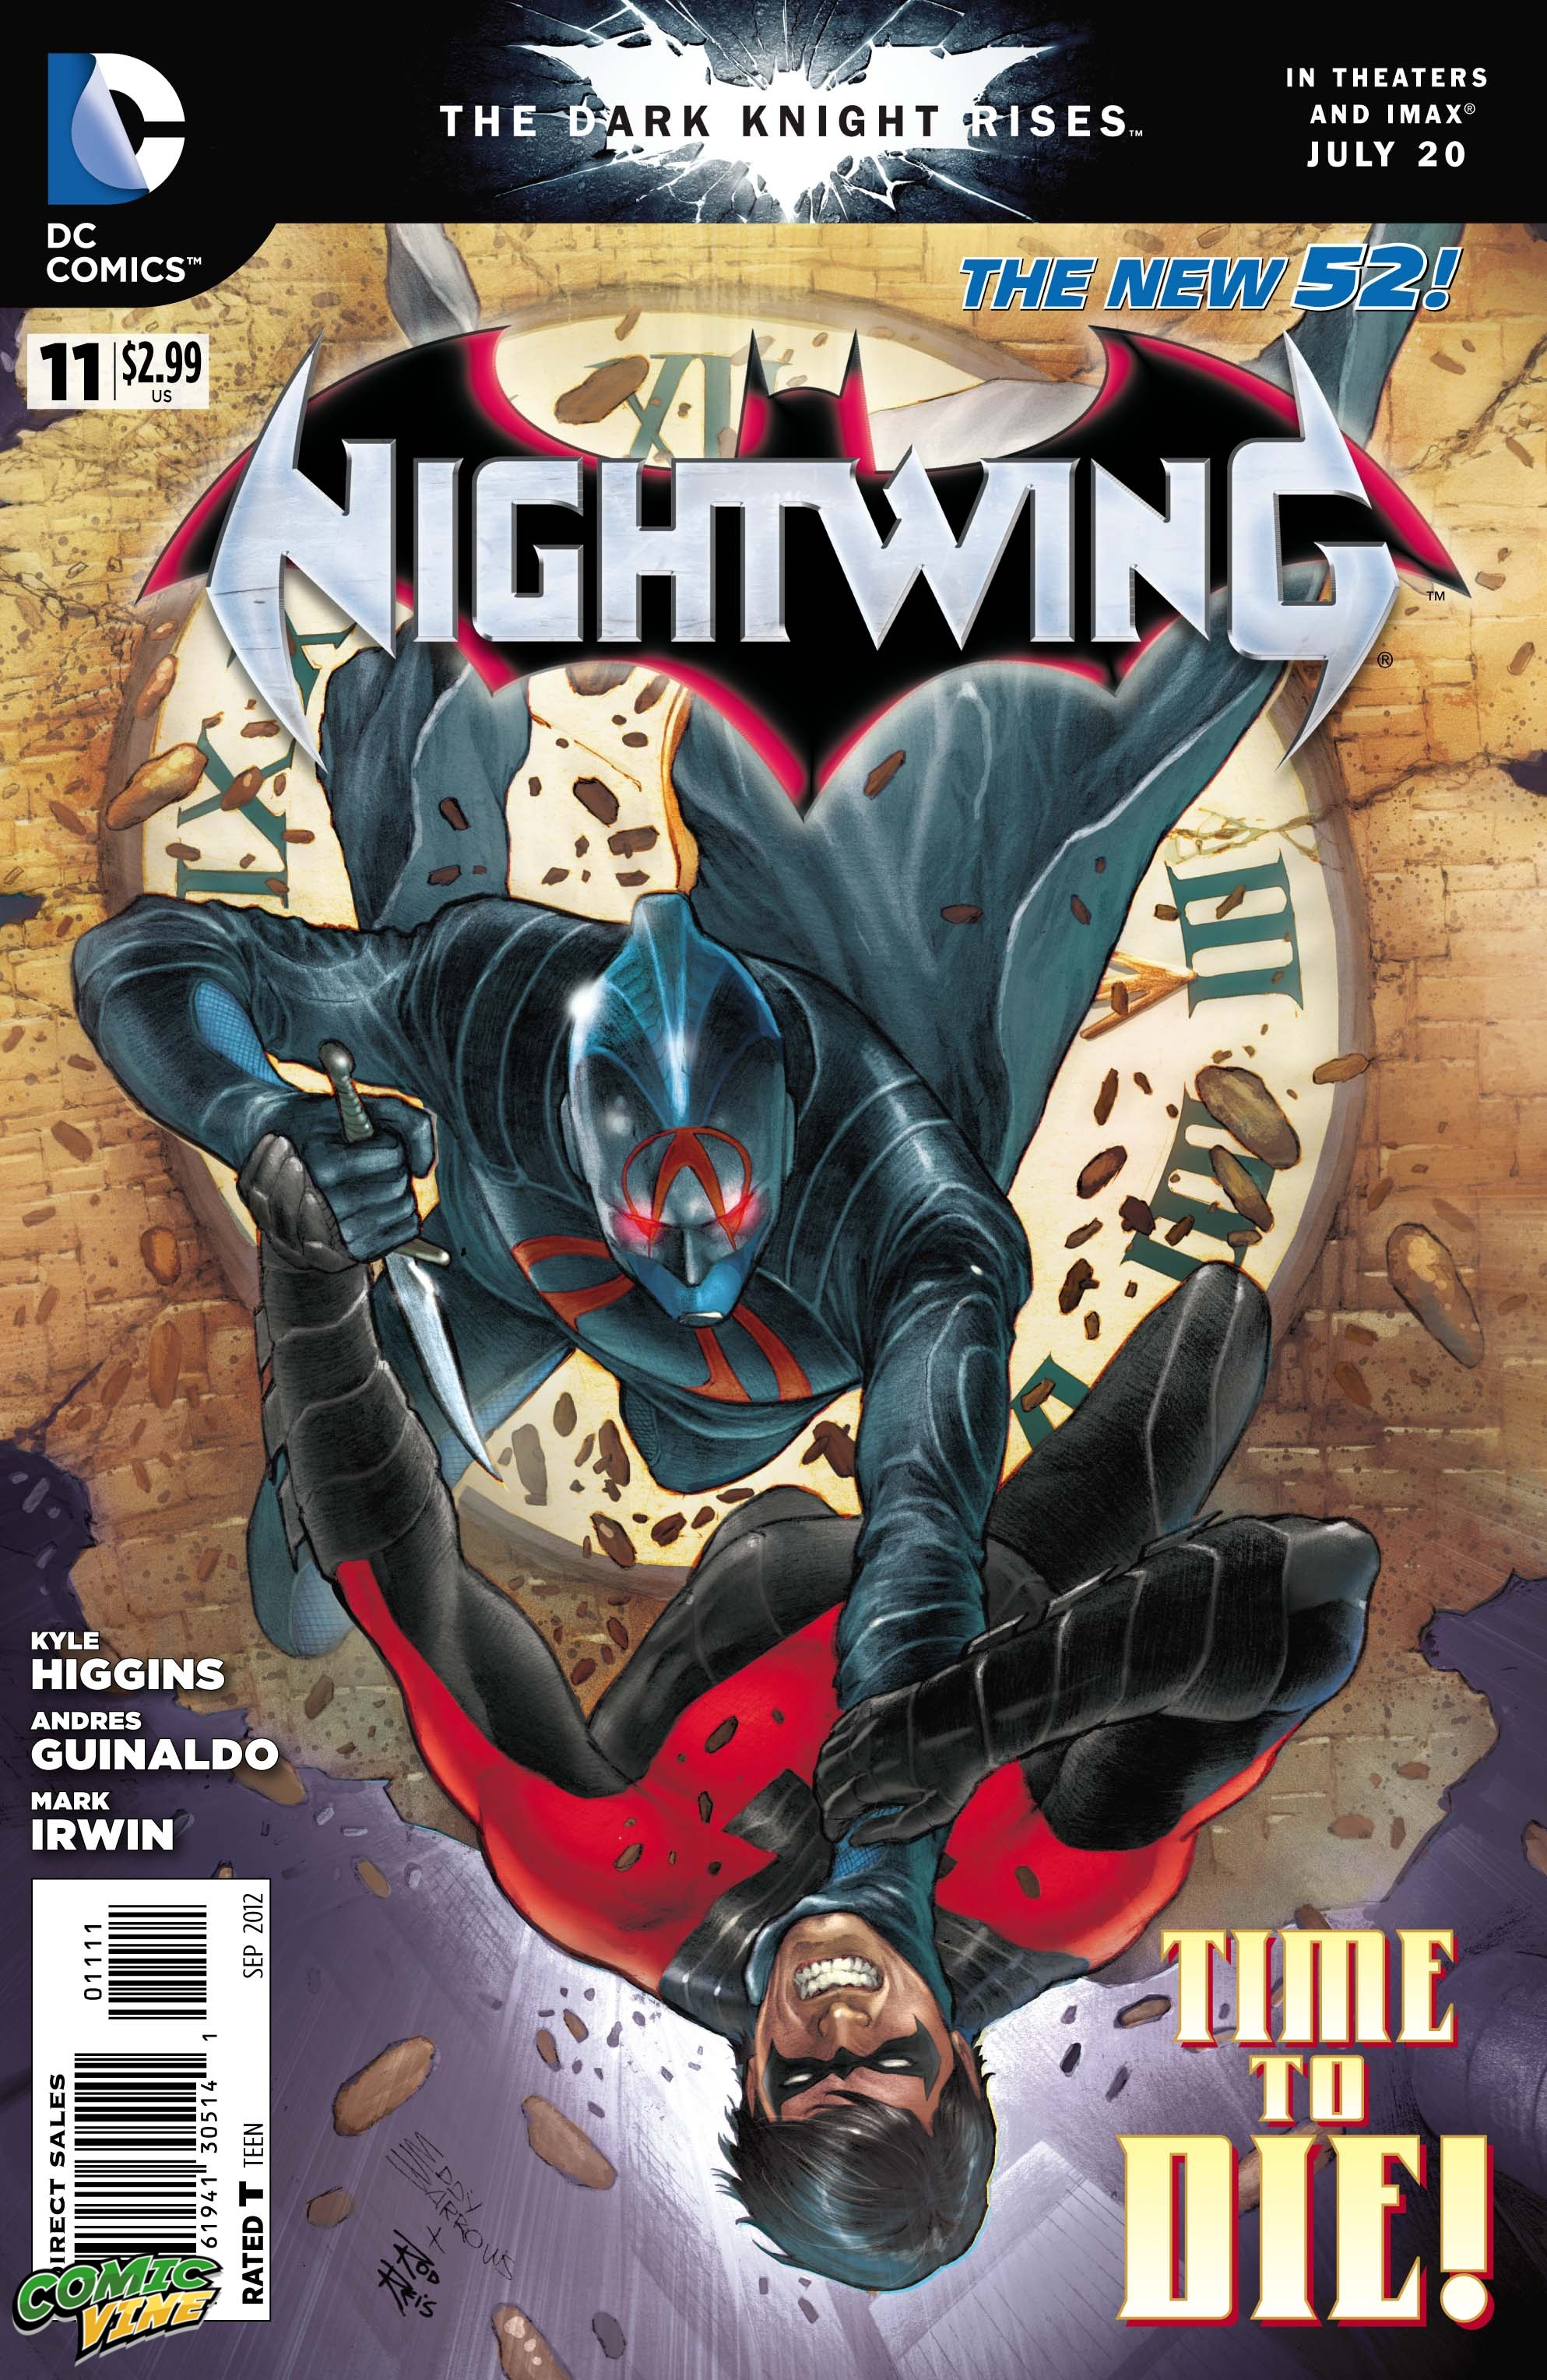 Nightwing Vol 3 11 Cover 1